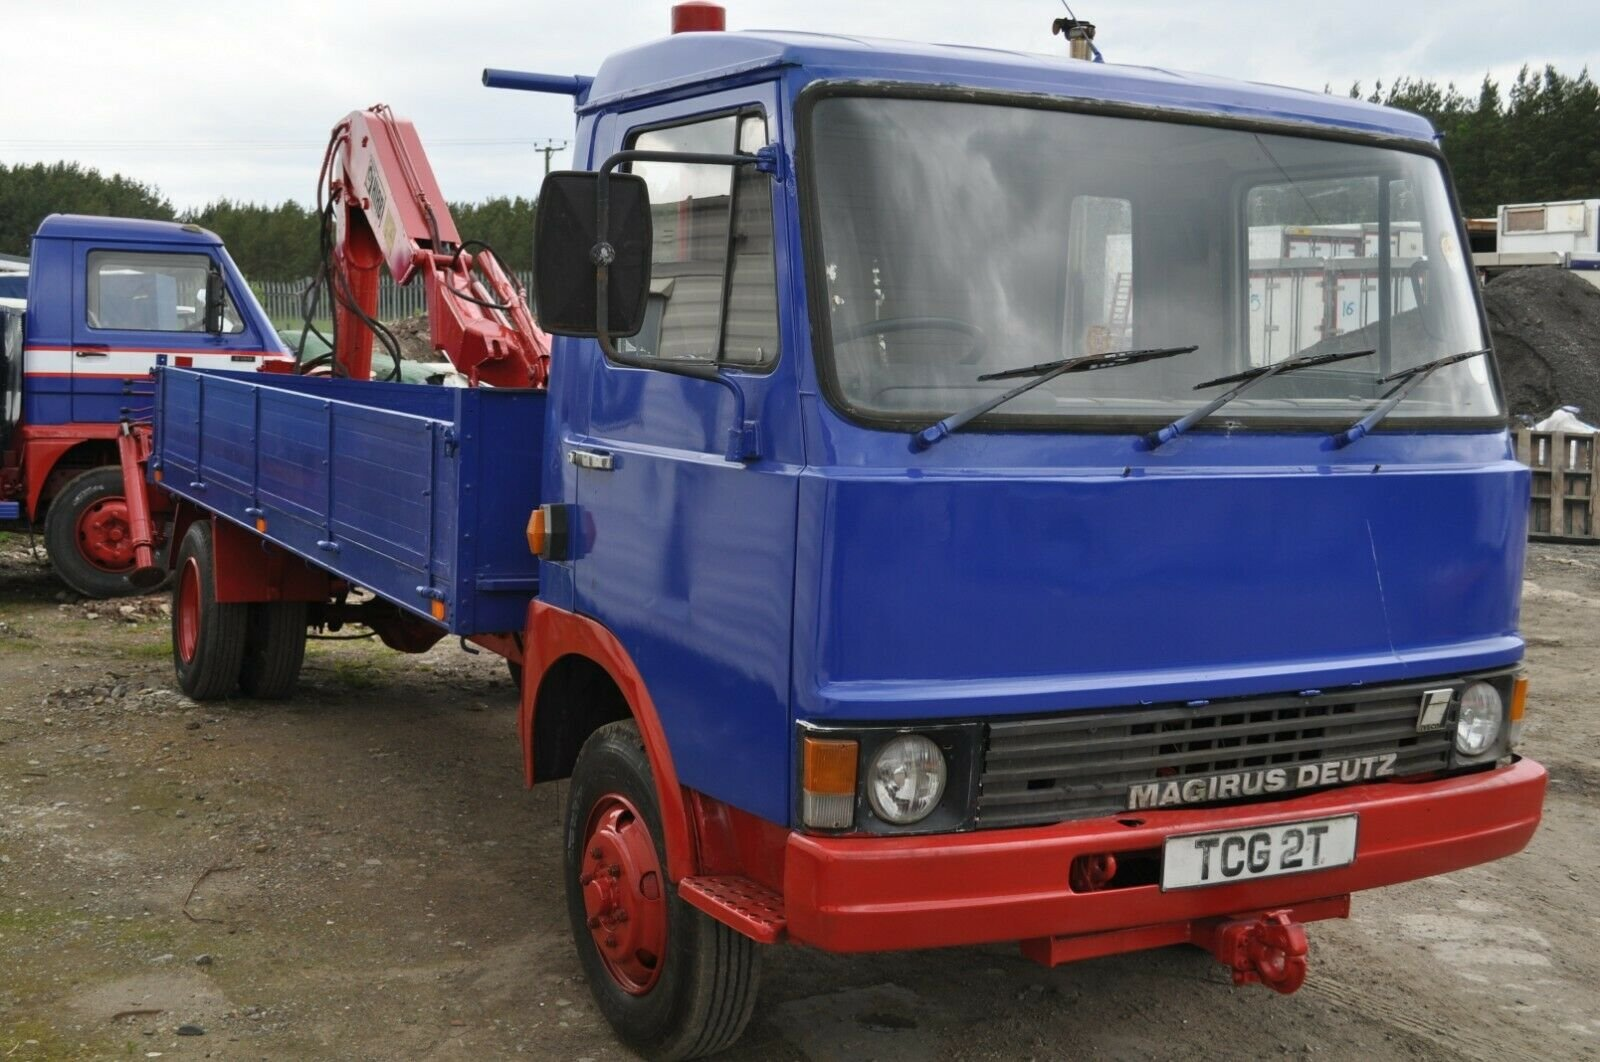 1982 MAGIRUS DEUTZ 90 M 75 TRUCK WITH HIAB PRIVATE NUMBER PLATE SOLD (picture 1 of 6)